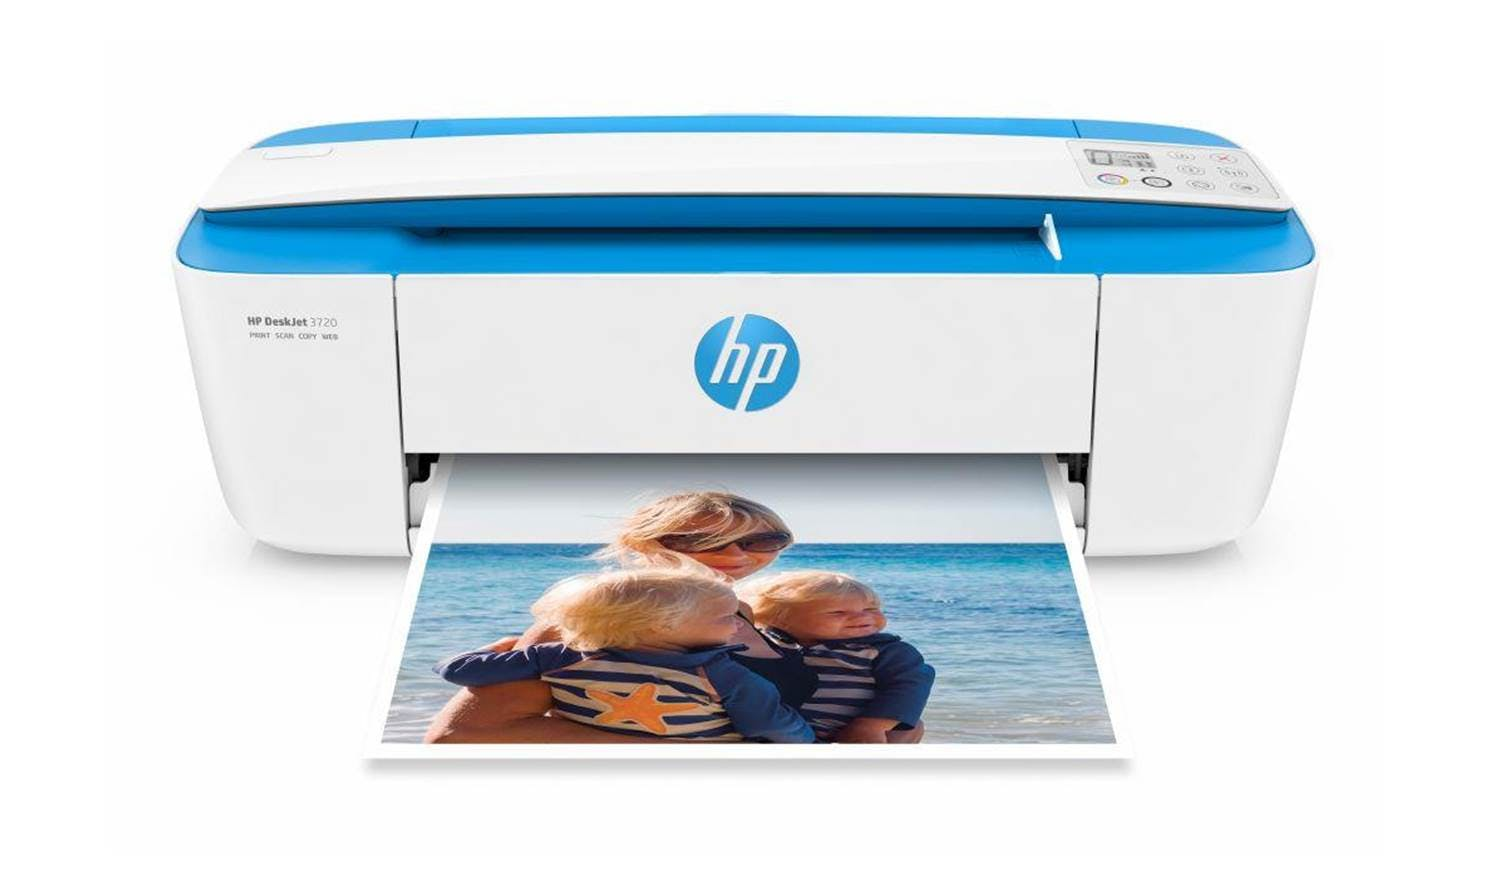 HP DeskJet 3720 All-In-One Printer - Blue